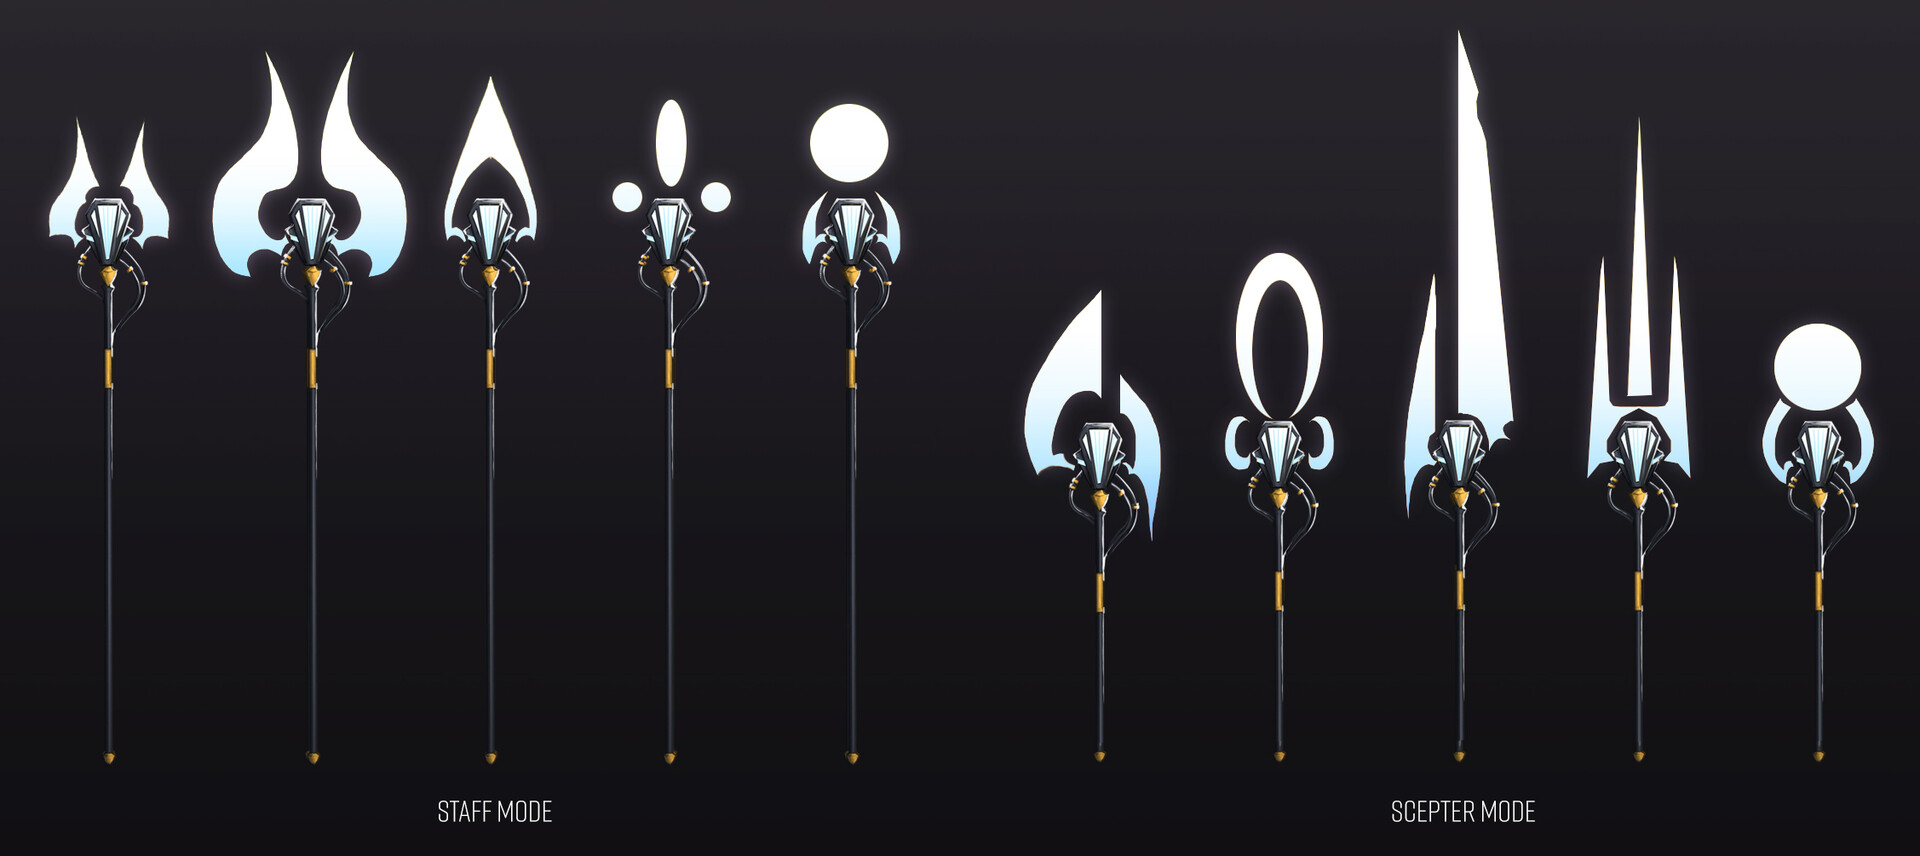 Lord Faltreau [2/2] Weapon/staff exploration. Wanted energy-based weapon that could adjust to his battle needs.